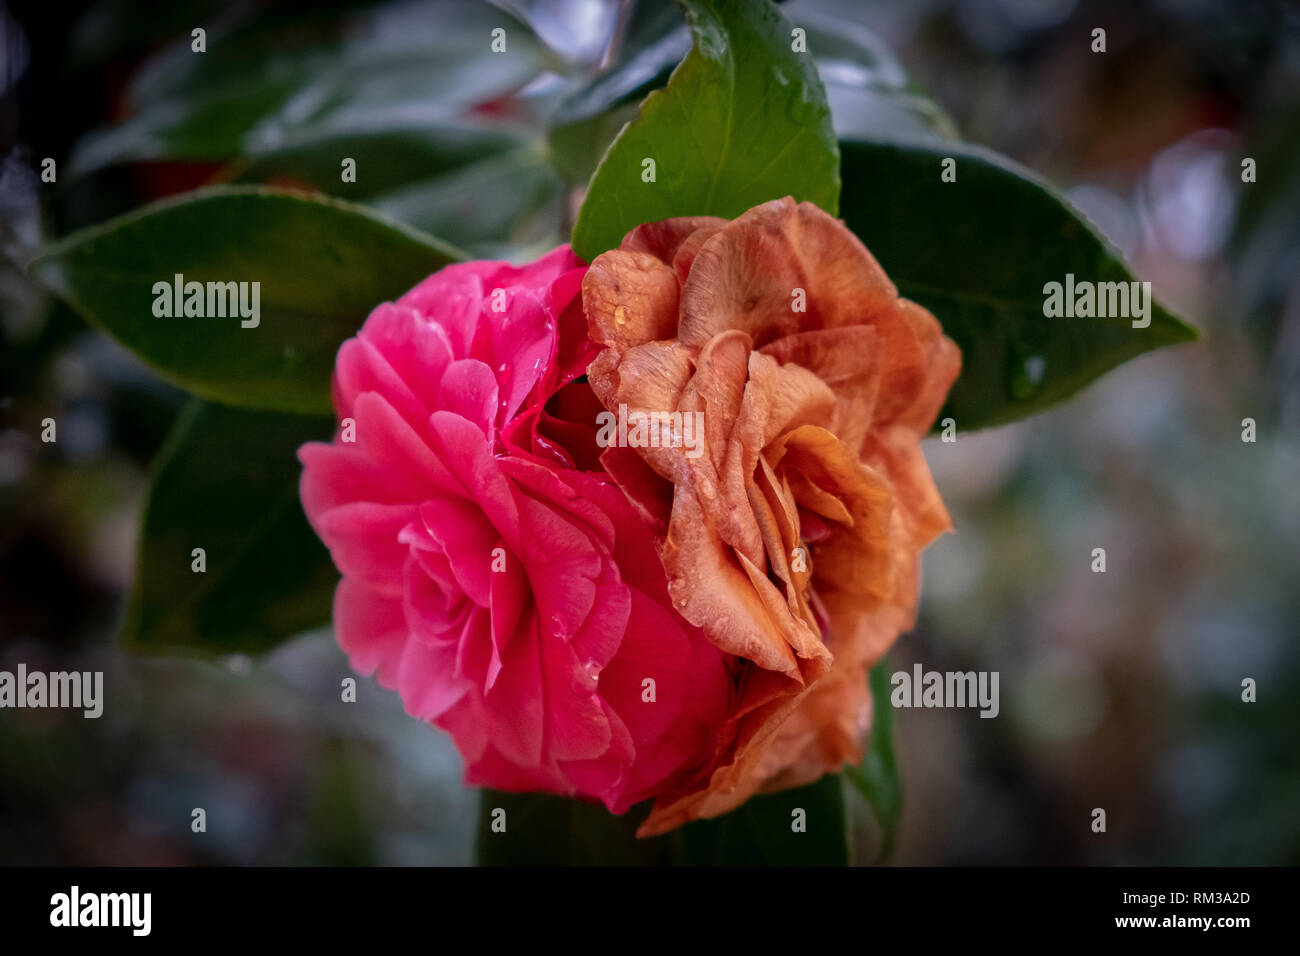 Common camellias, with one fresh and vibrant, and the other old and weathered. Could symbolize old vs new, or reflection of time gone by. - Stock Image